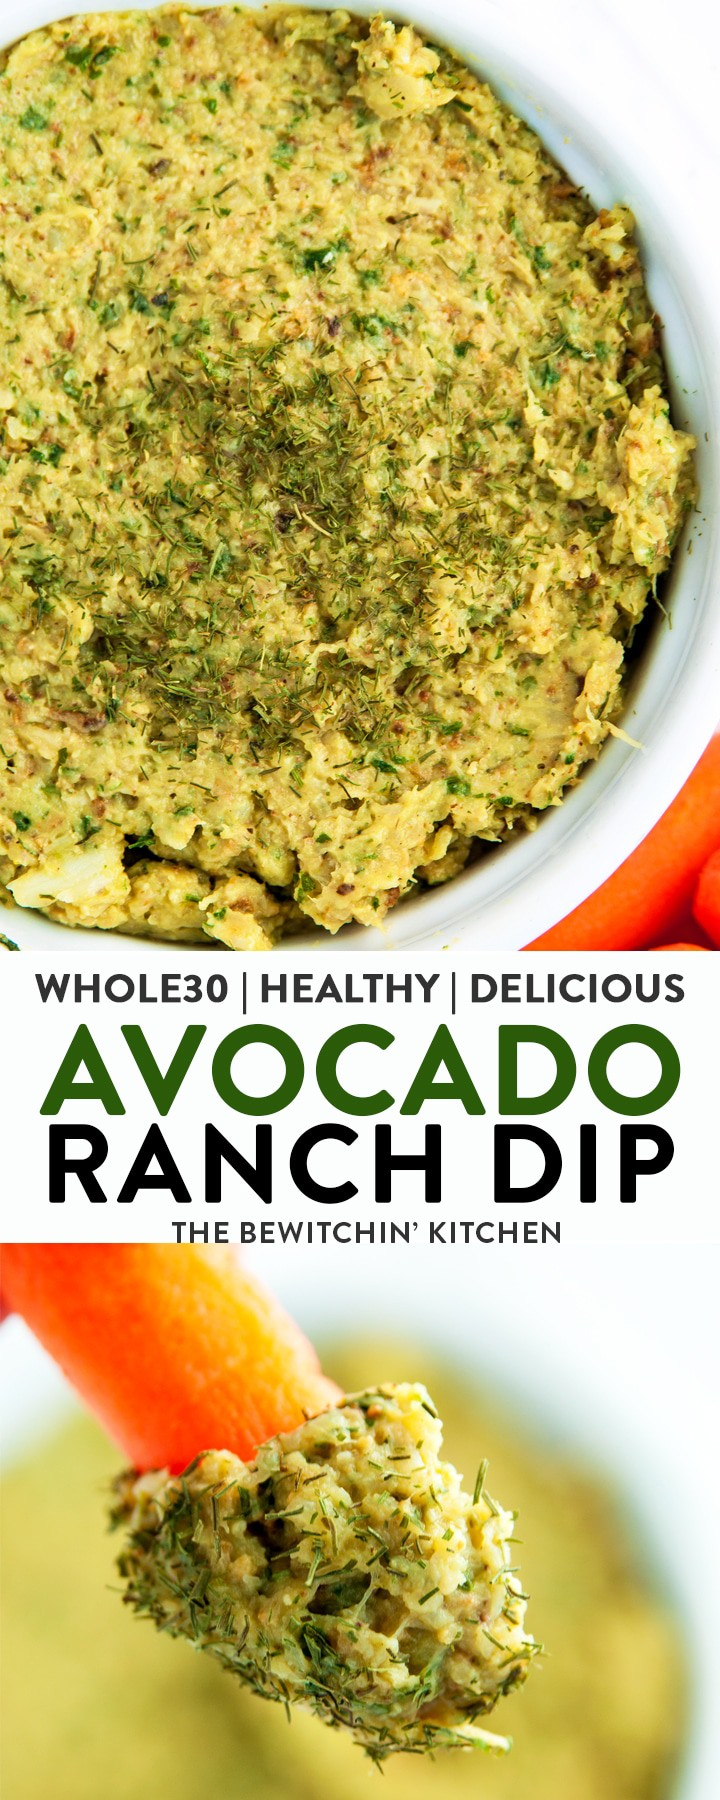 Looking for a healthy dip recipe? Check out this Avocado Ranch Dip. This appetizer is Whole30 and loaded with veggies and healthy fats. The secret ingredient? Cauliflower!